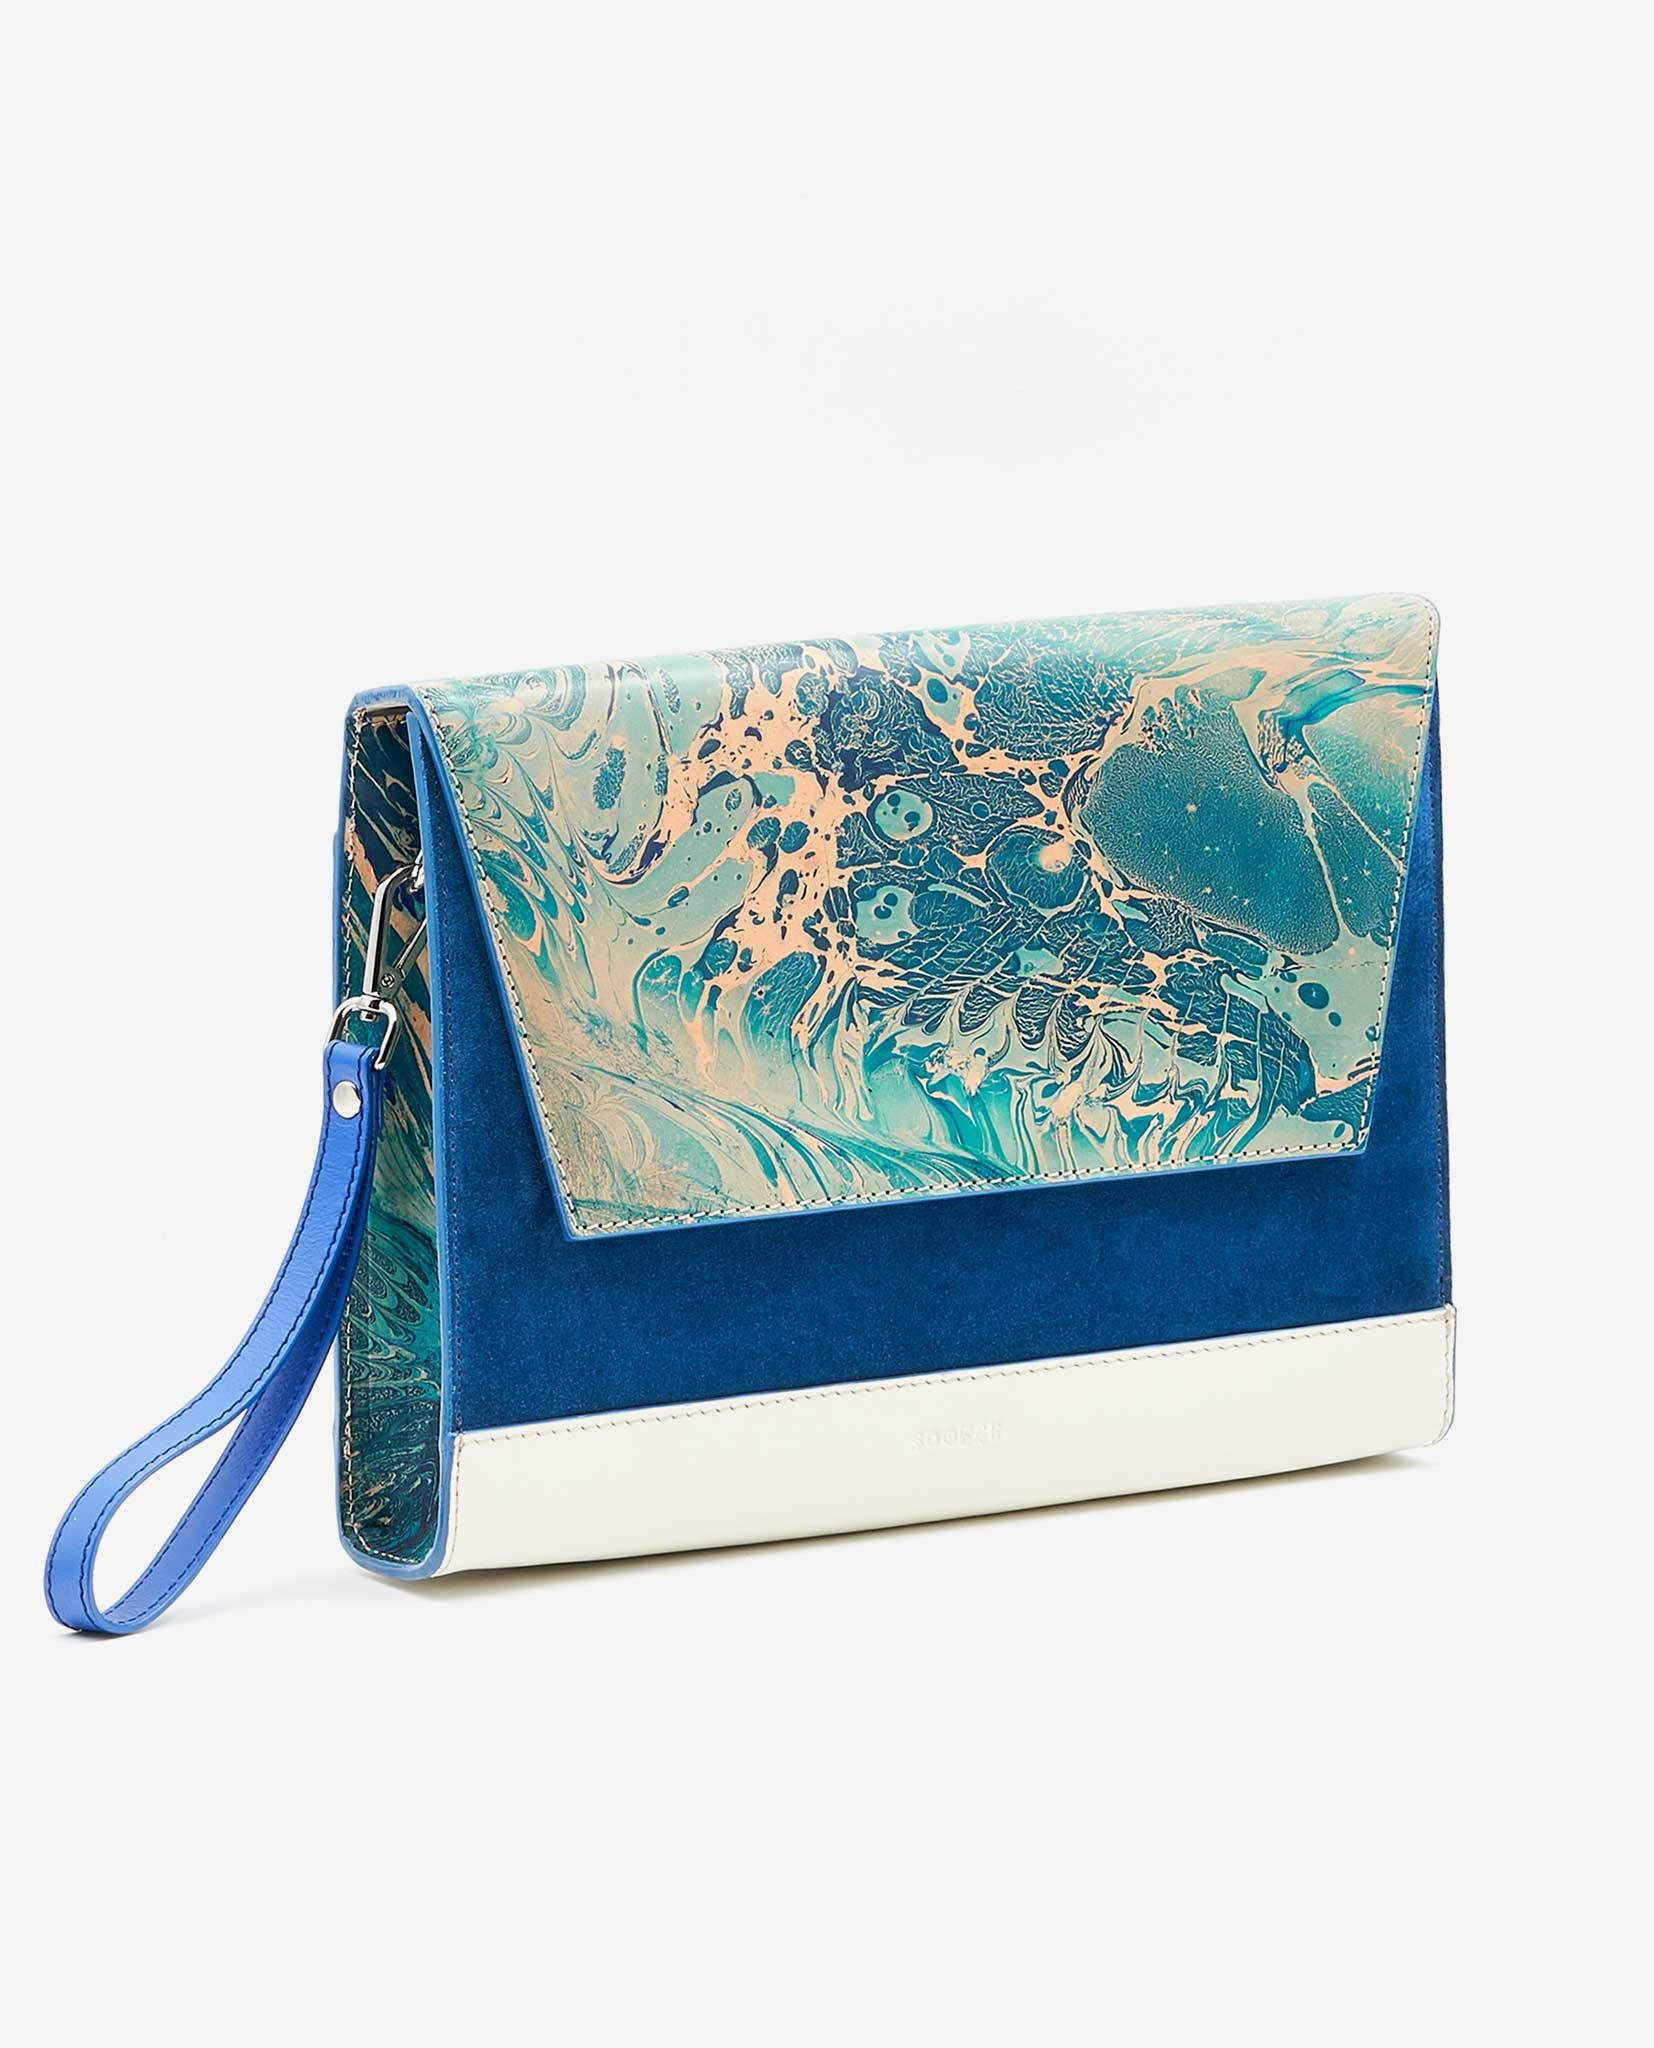 SOOFRE Berlin unique Clutch marble turquoise sapphire blue ivory